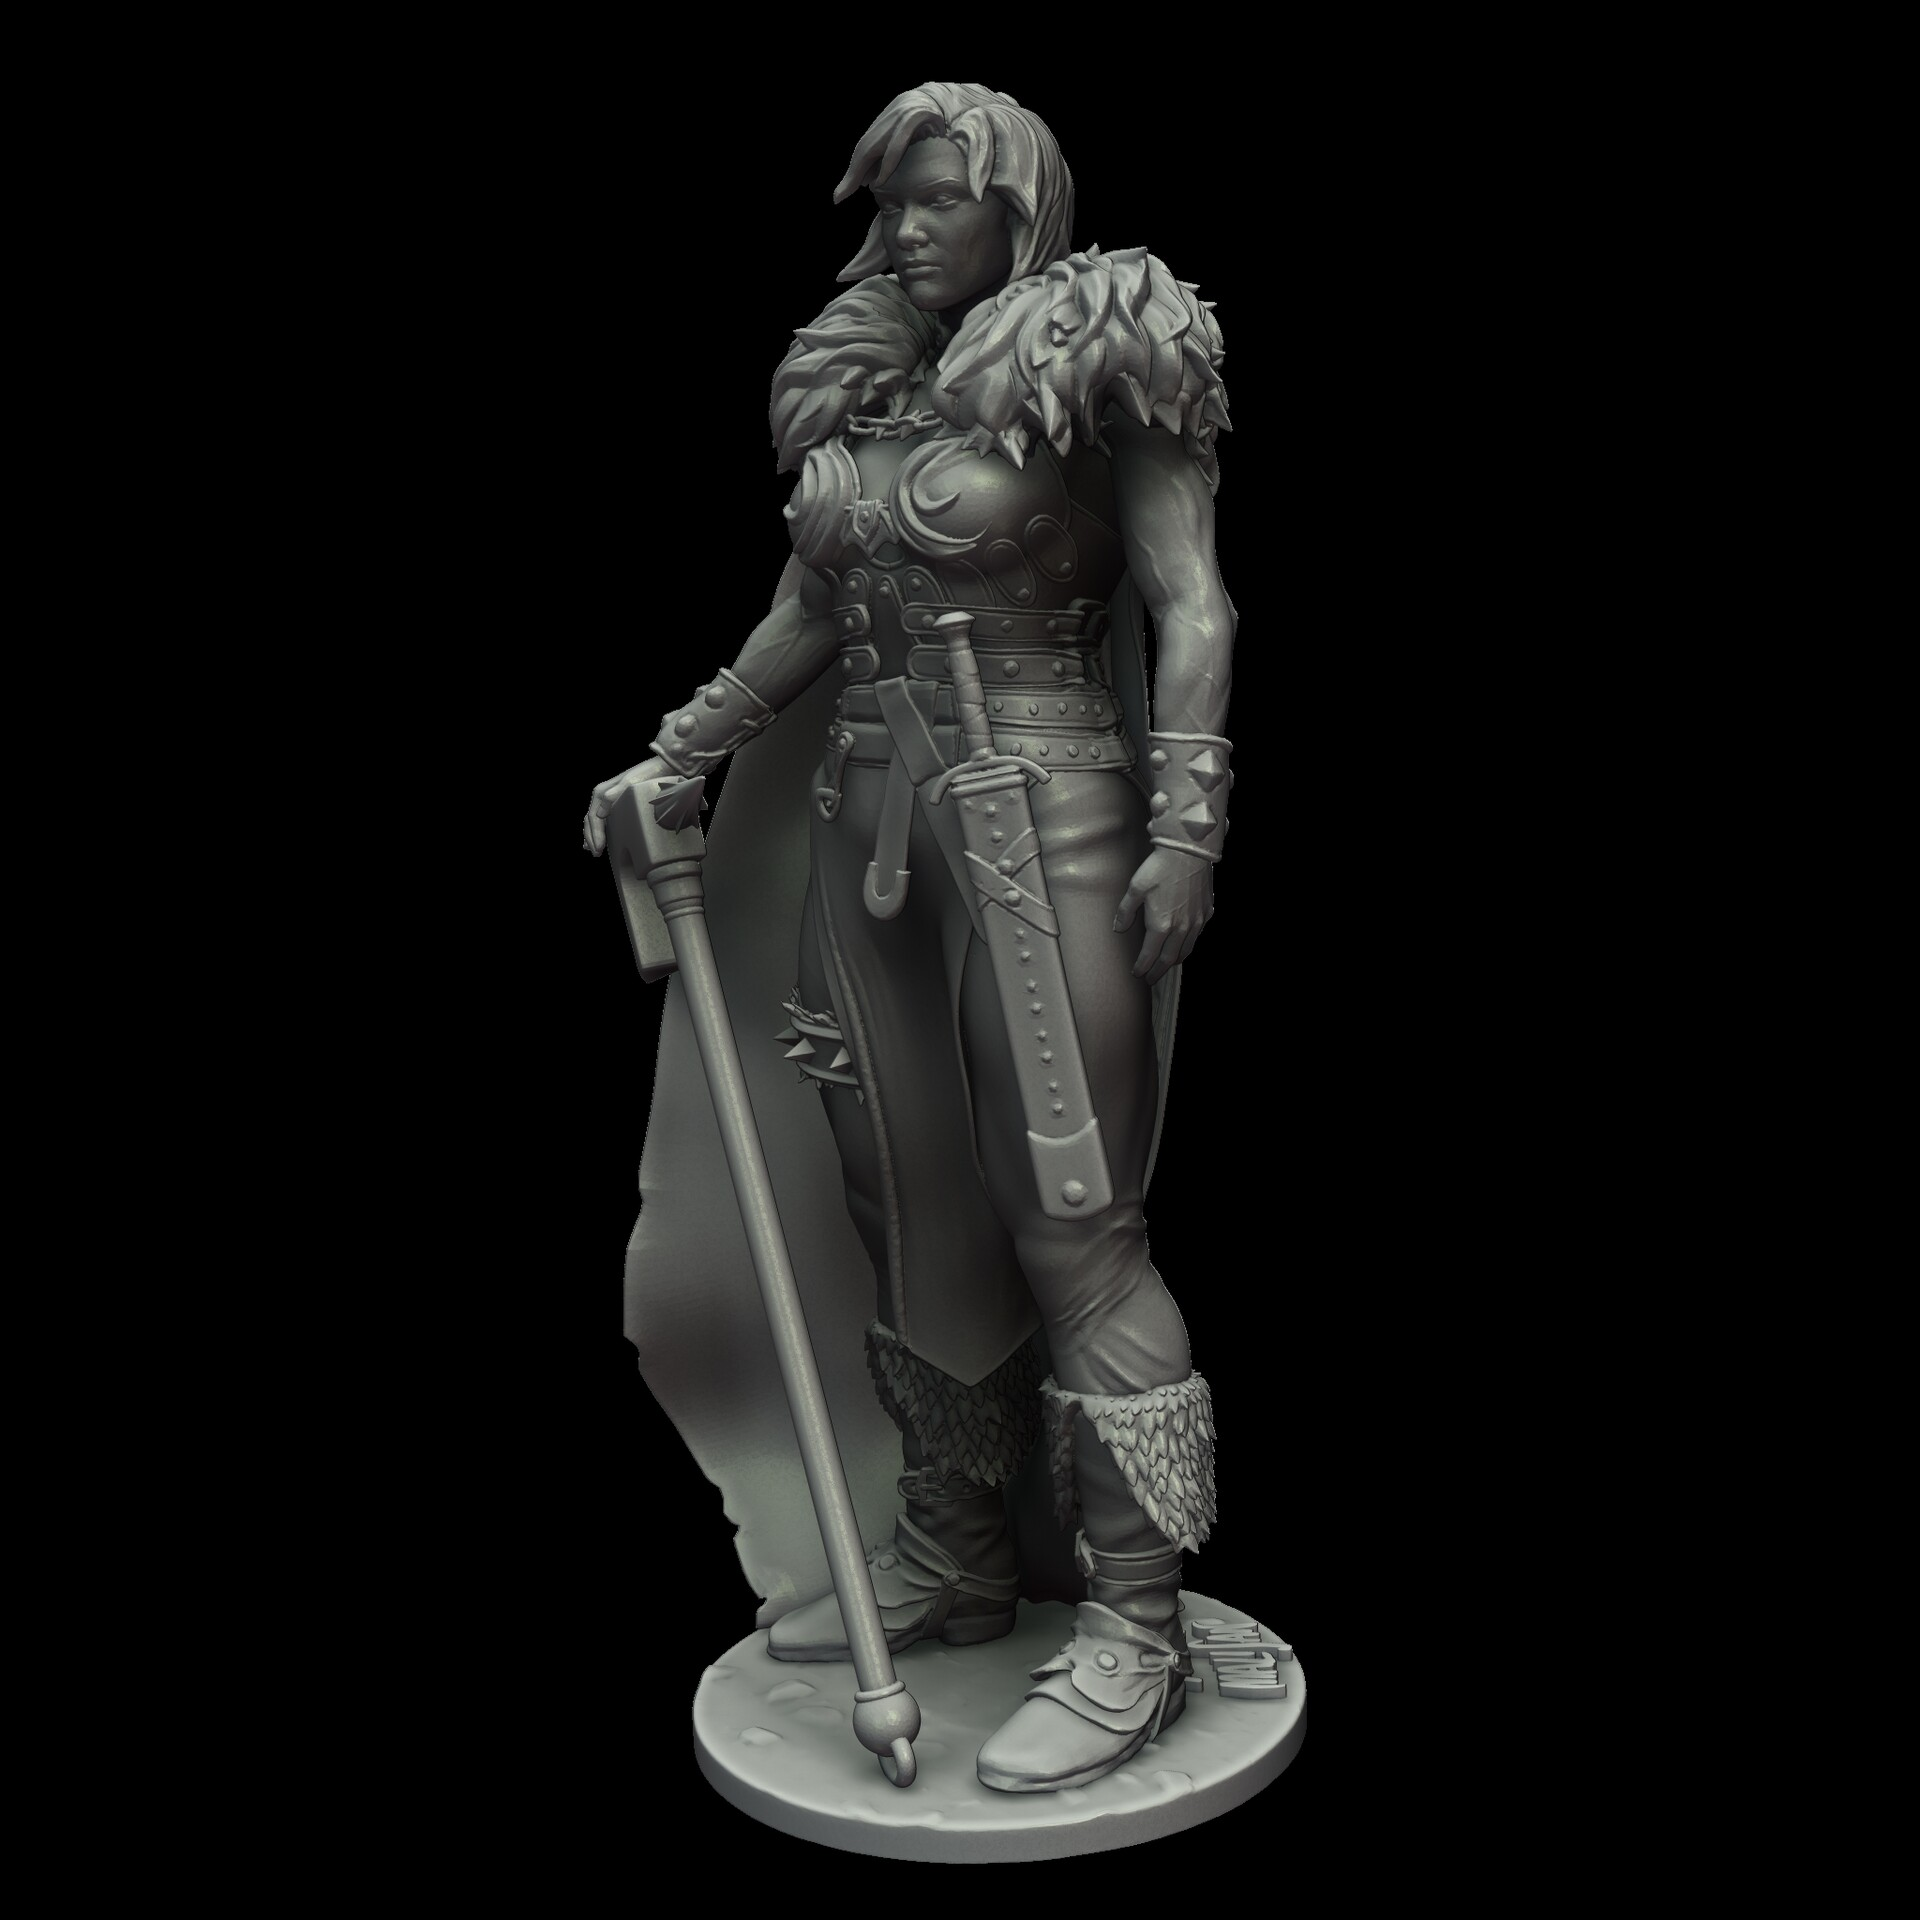 Clay render of the character ready for 3D printing (ZBrush)